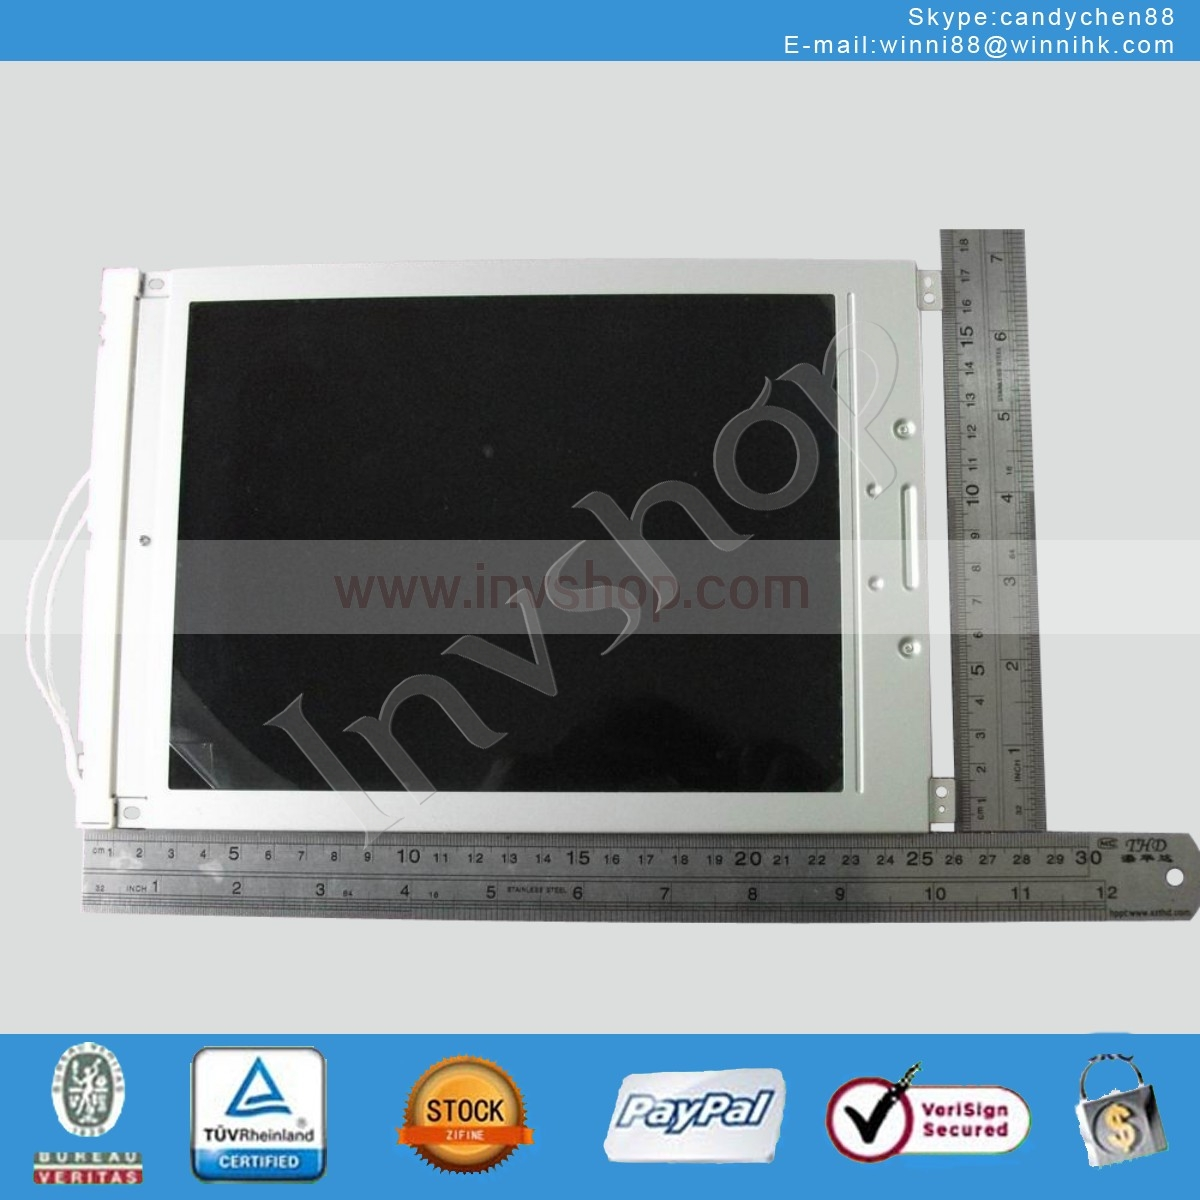 LCD Screen Display Panel 9.4 inch OPTREX 640×480 DMF50260NF-FW DMF50260NF-FW-15